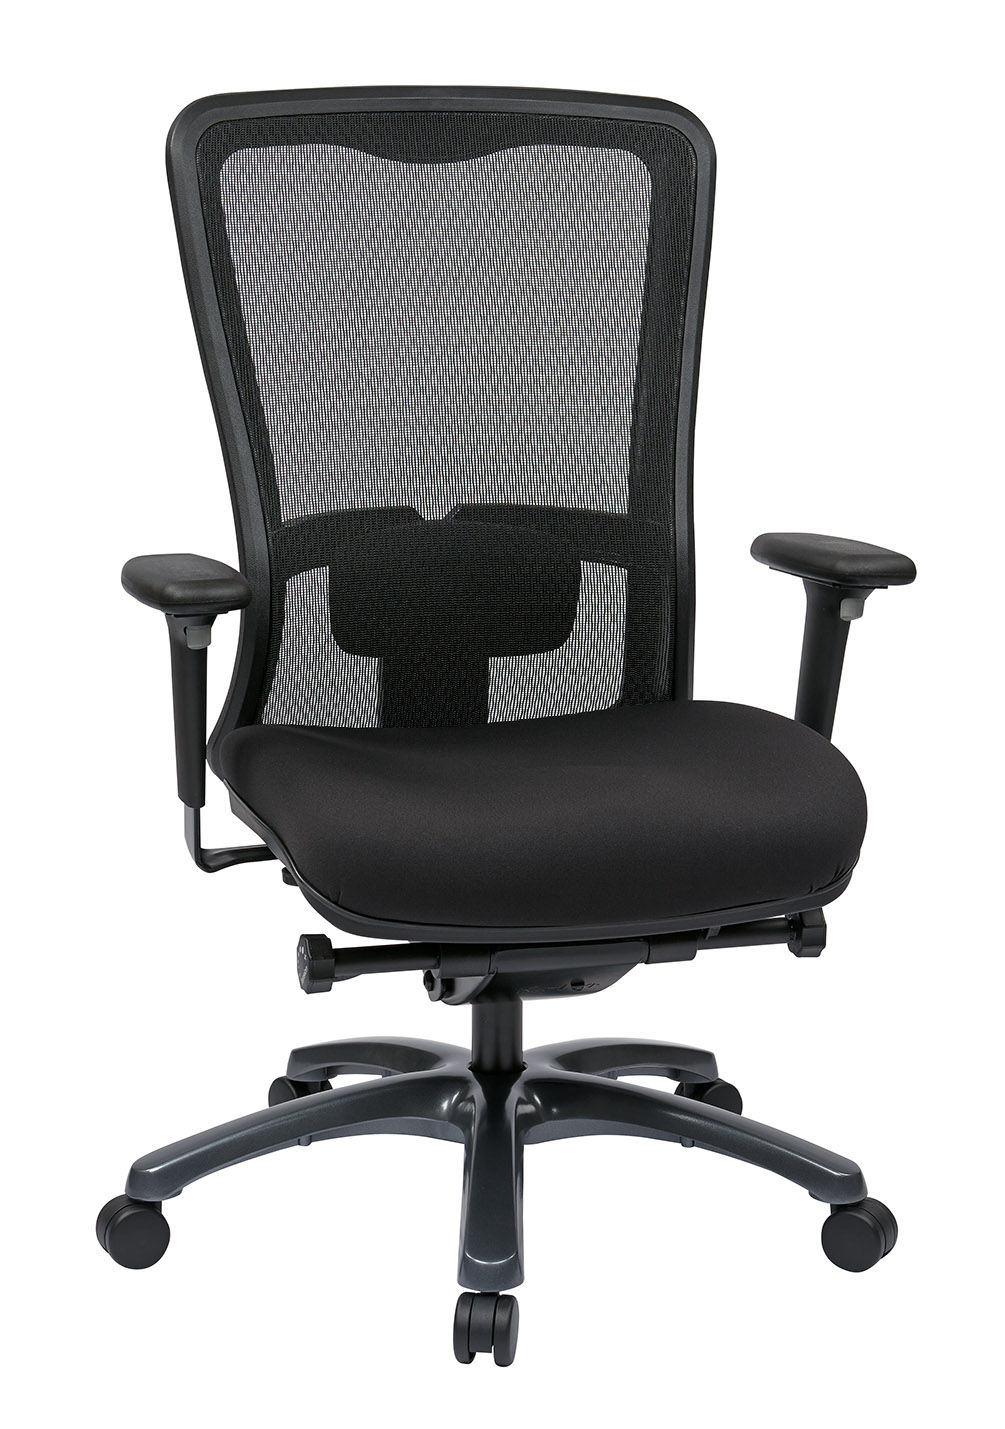 Dual Function Ergonomic Airgrid Chair Leather Front - Professional Dual Function Ergonomic Air Grid Chair w/ Cloth Seat